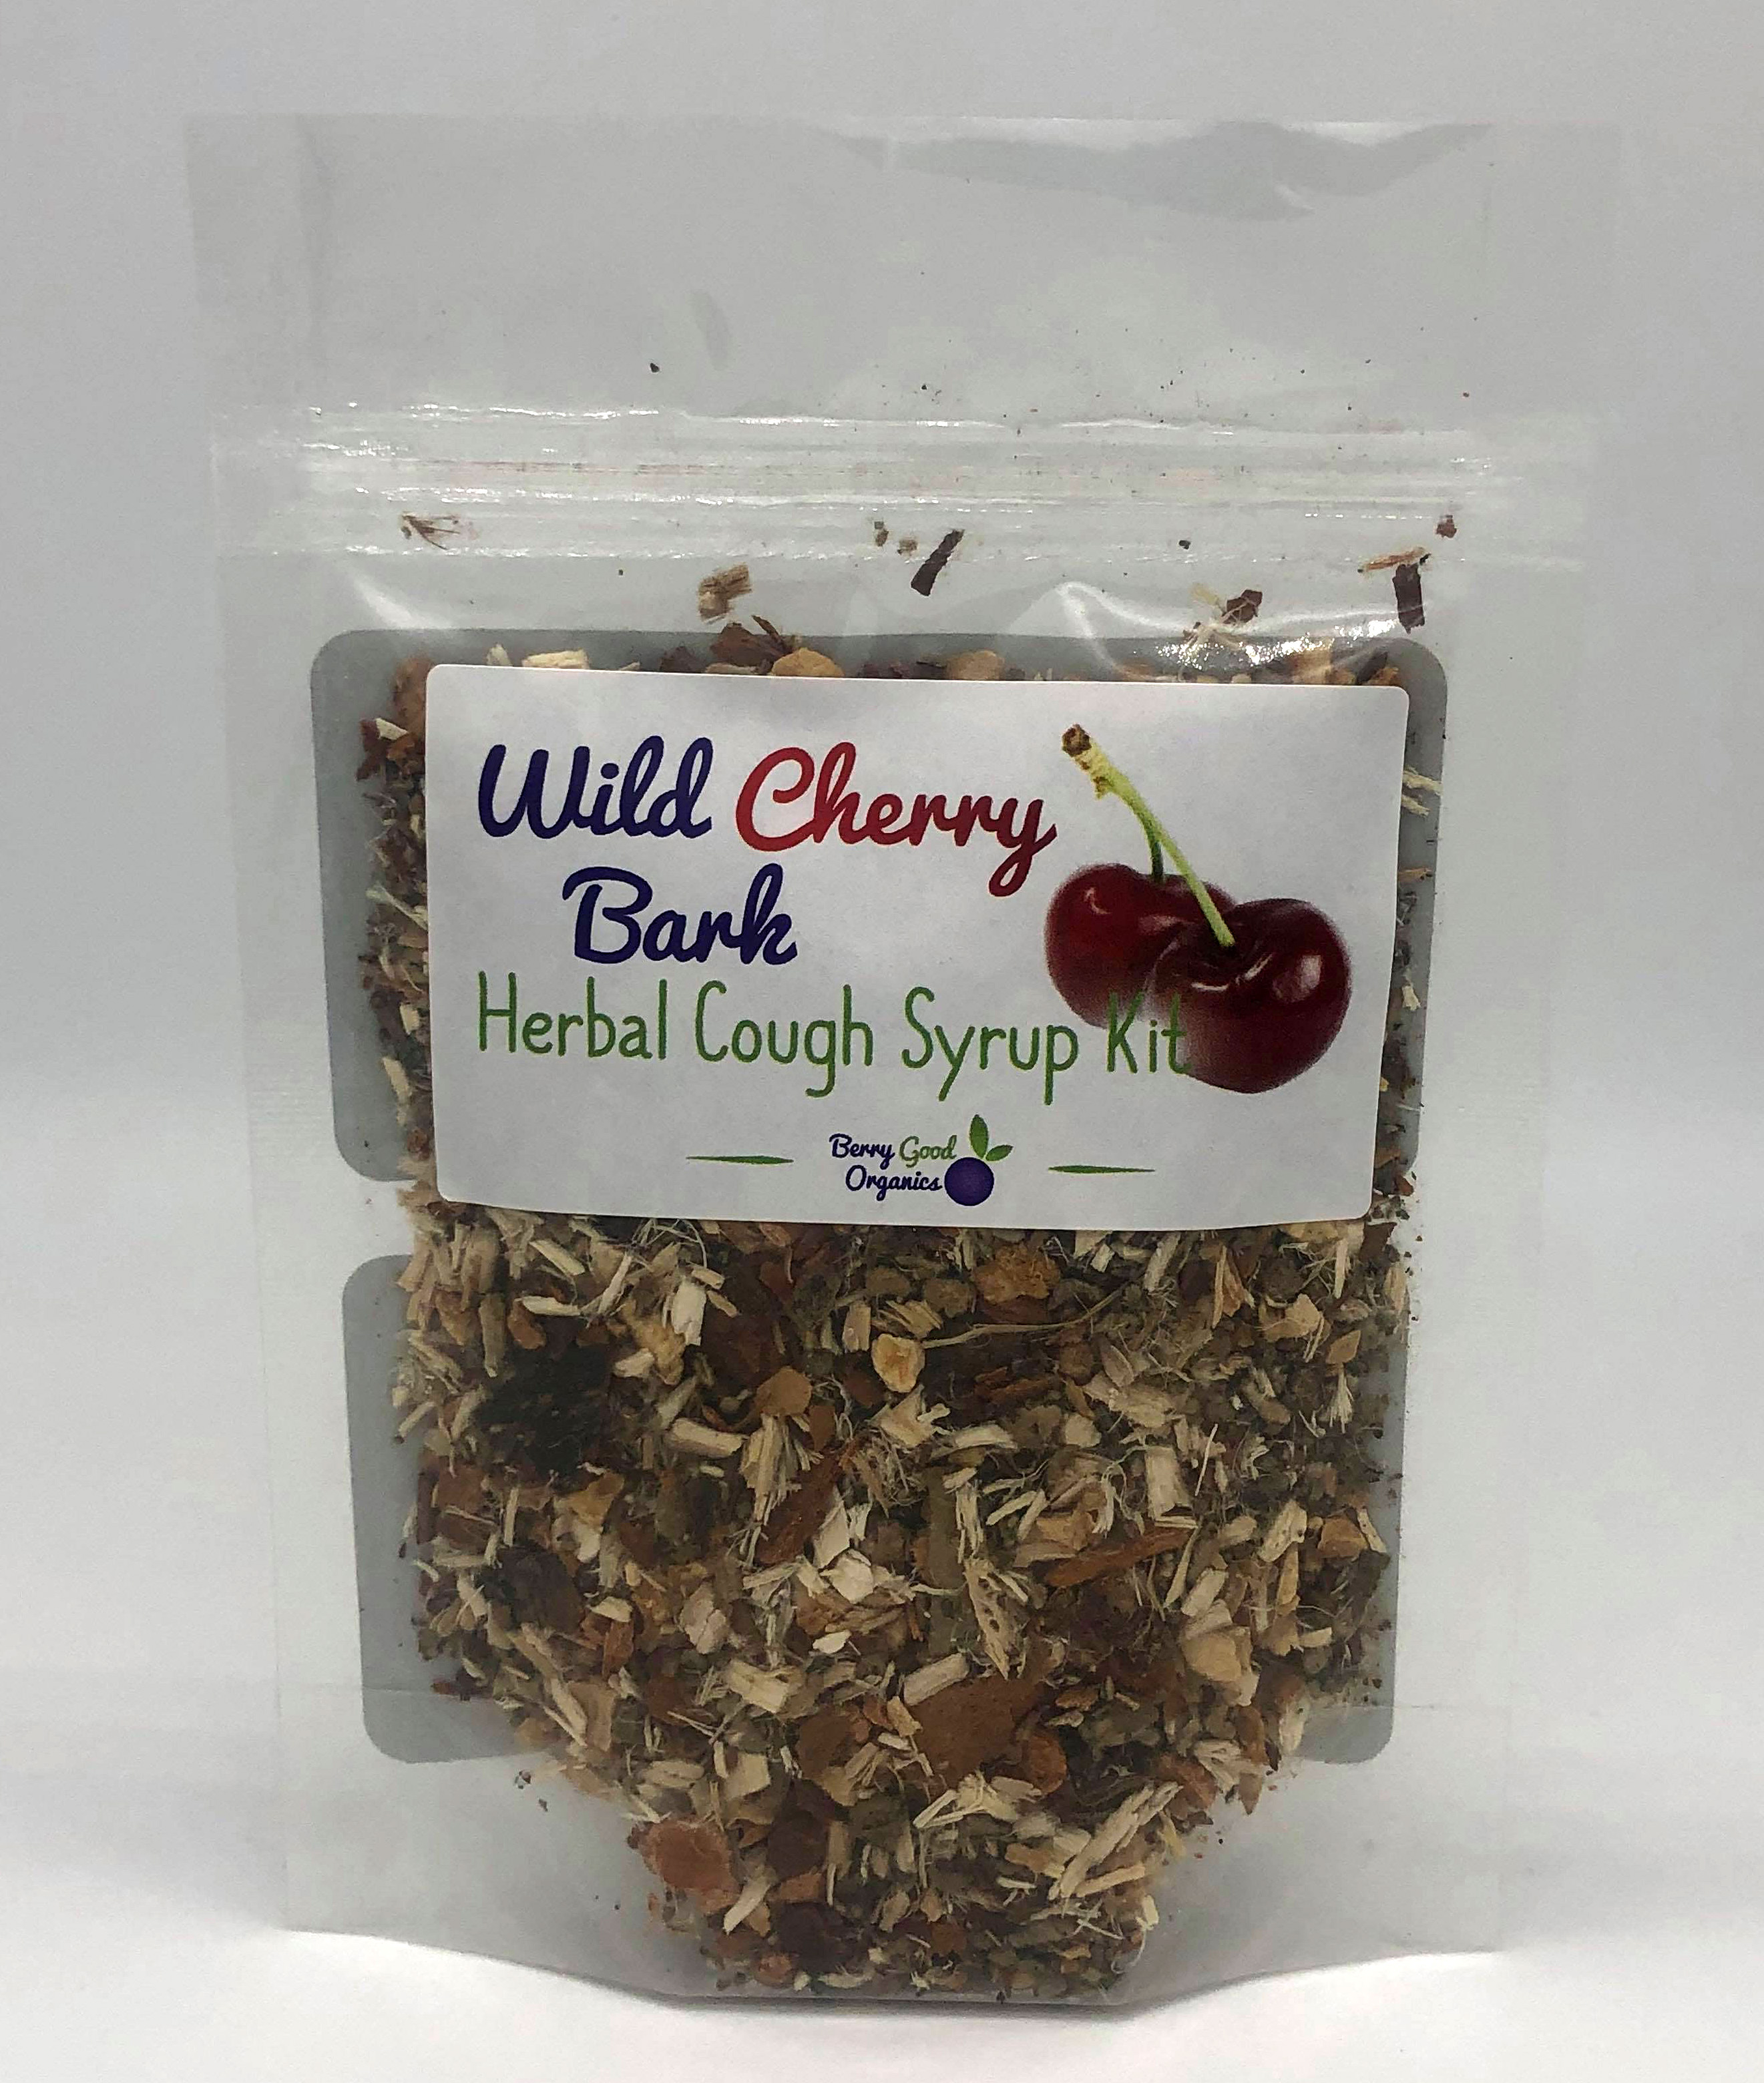 Wild Cherry Bark herbal cough syrup kit